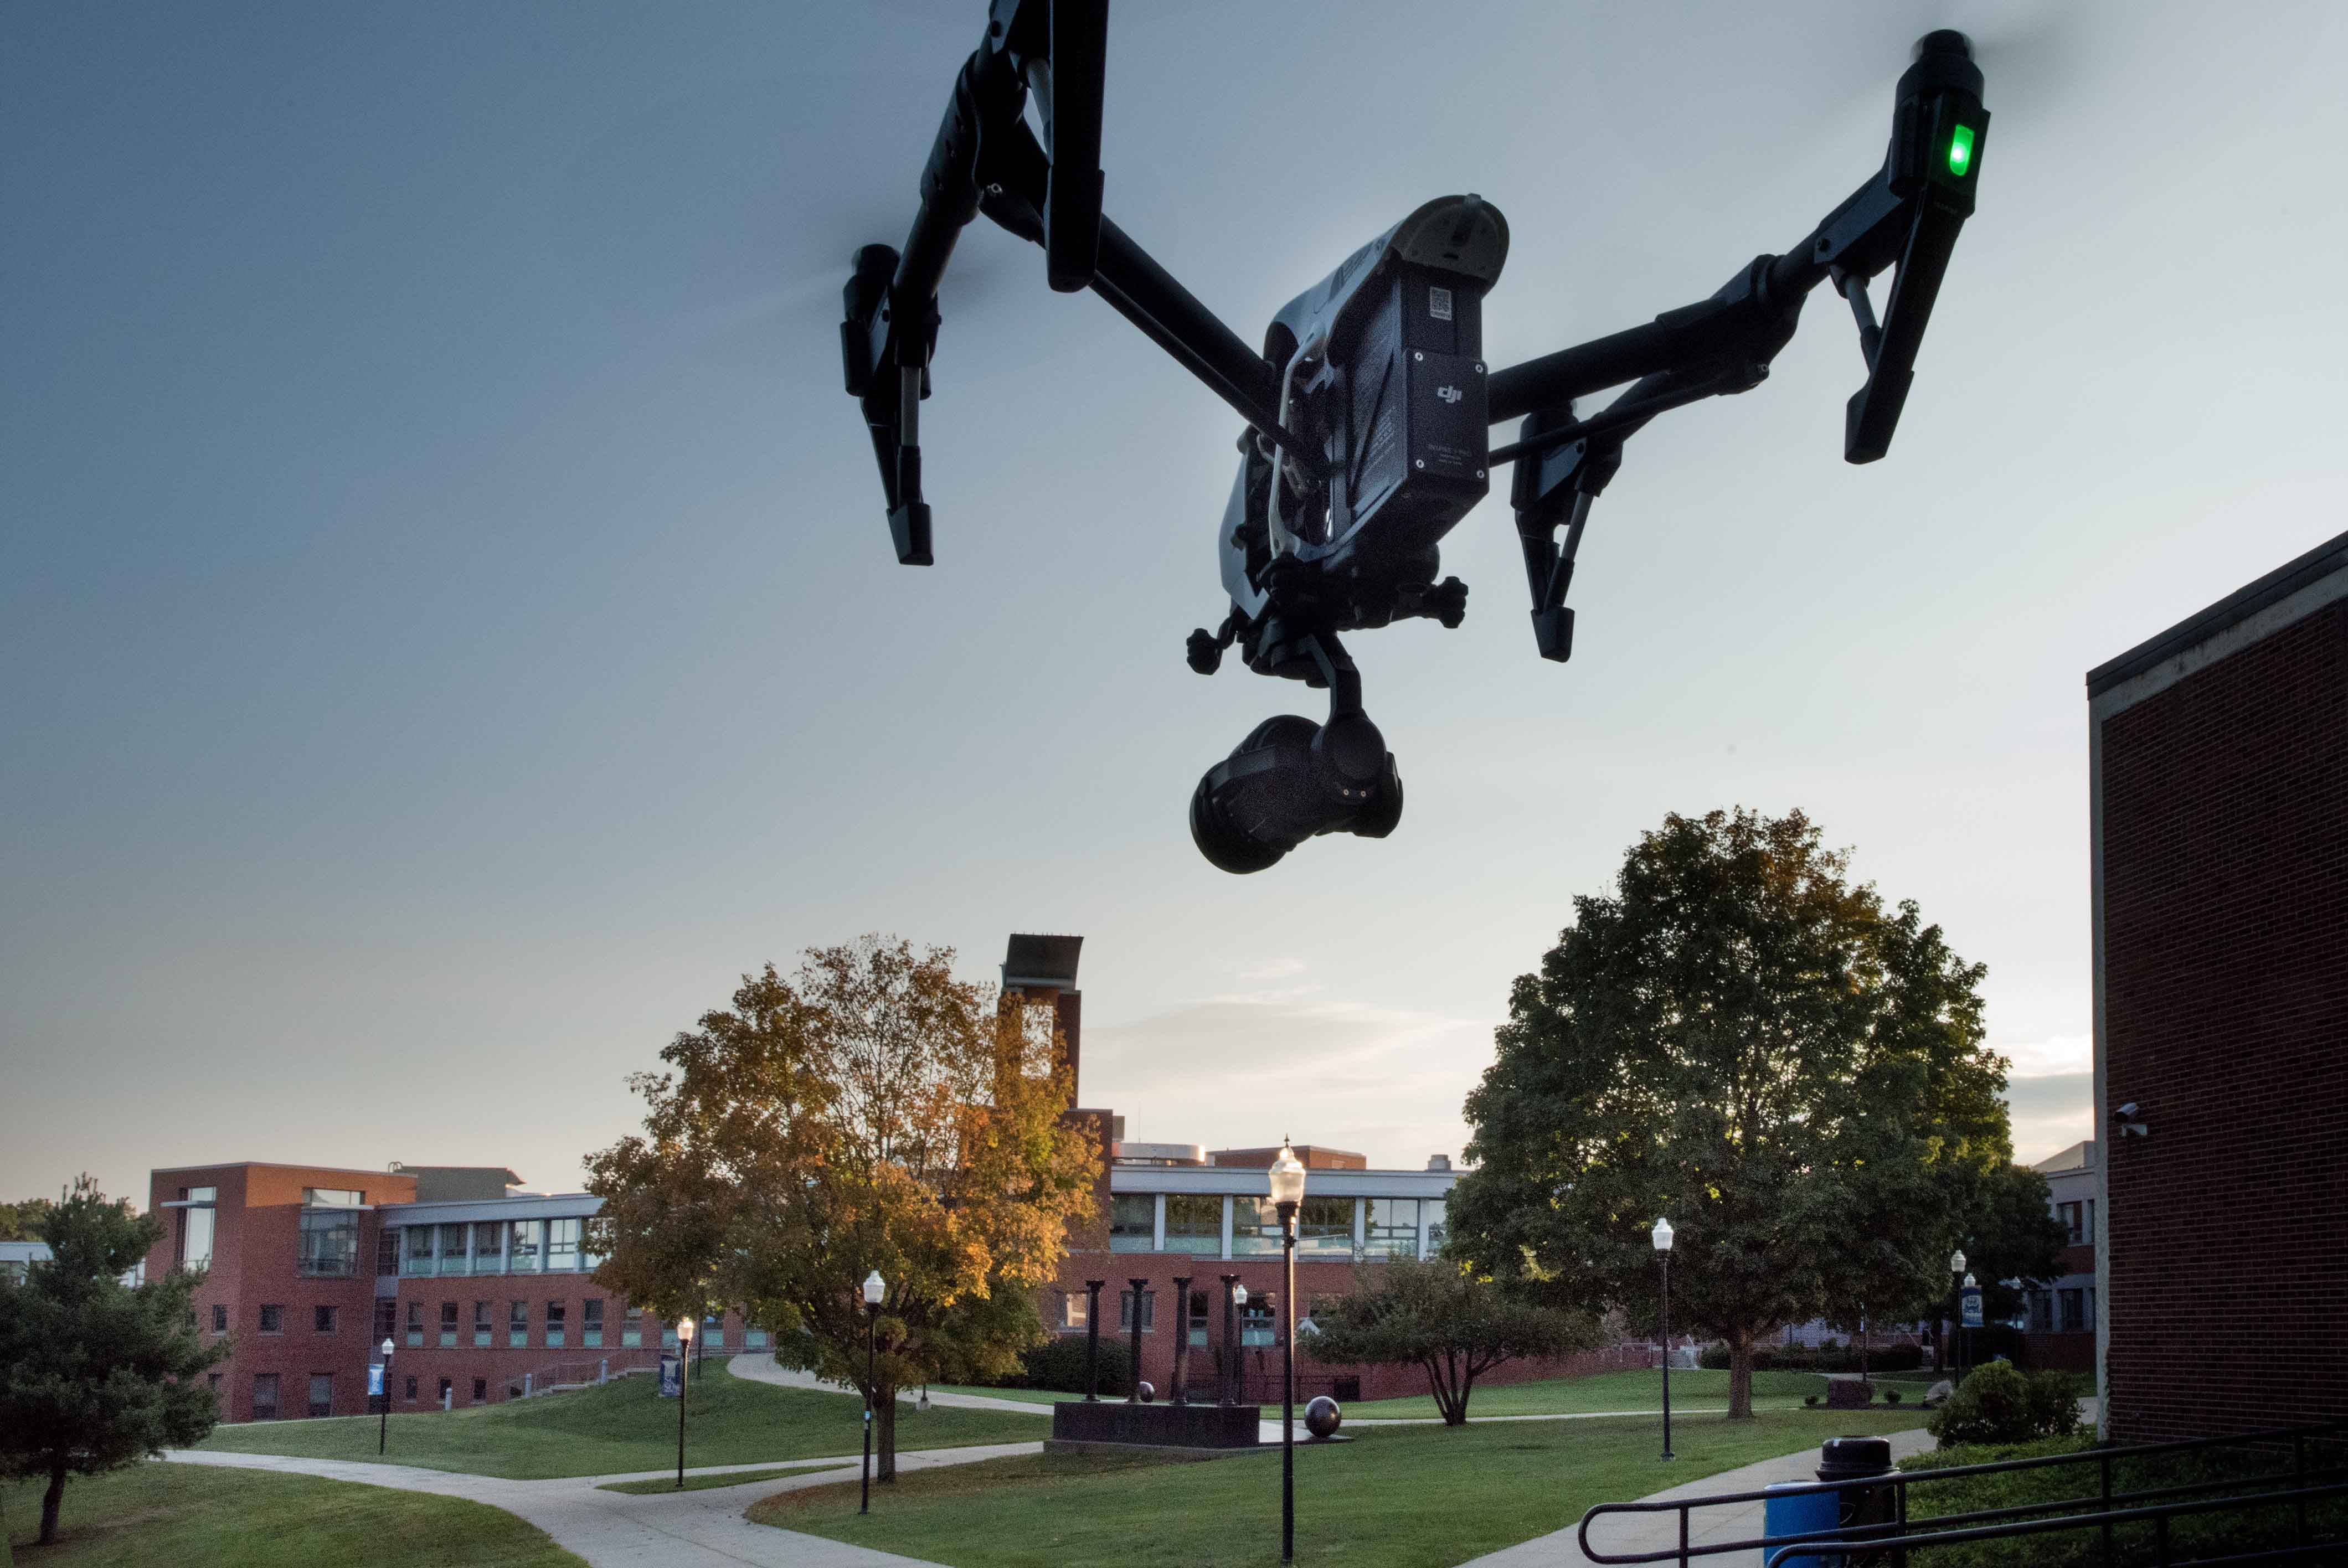 Drone Academy offers training in aerial photography